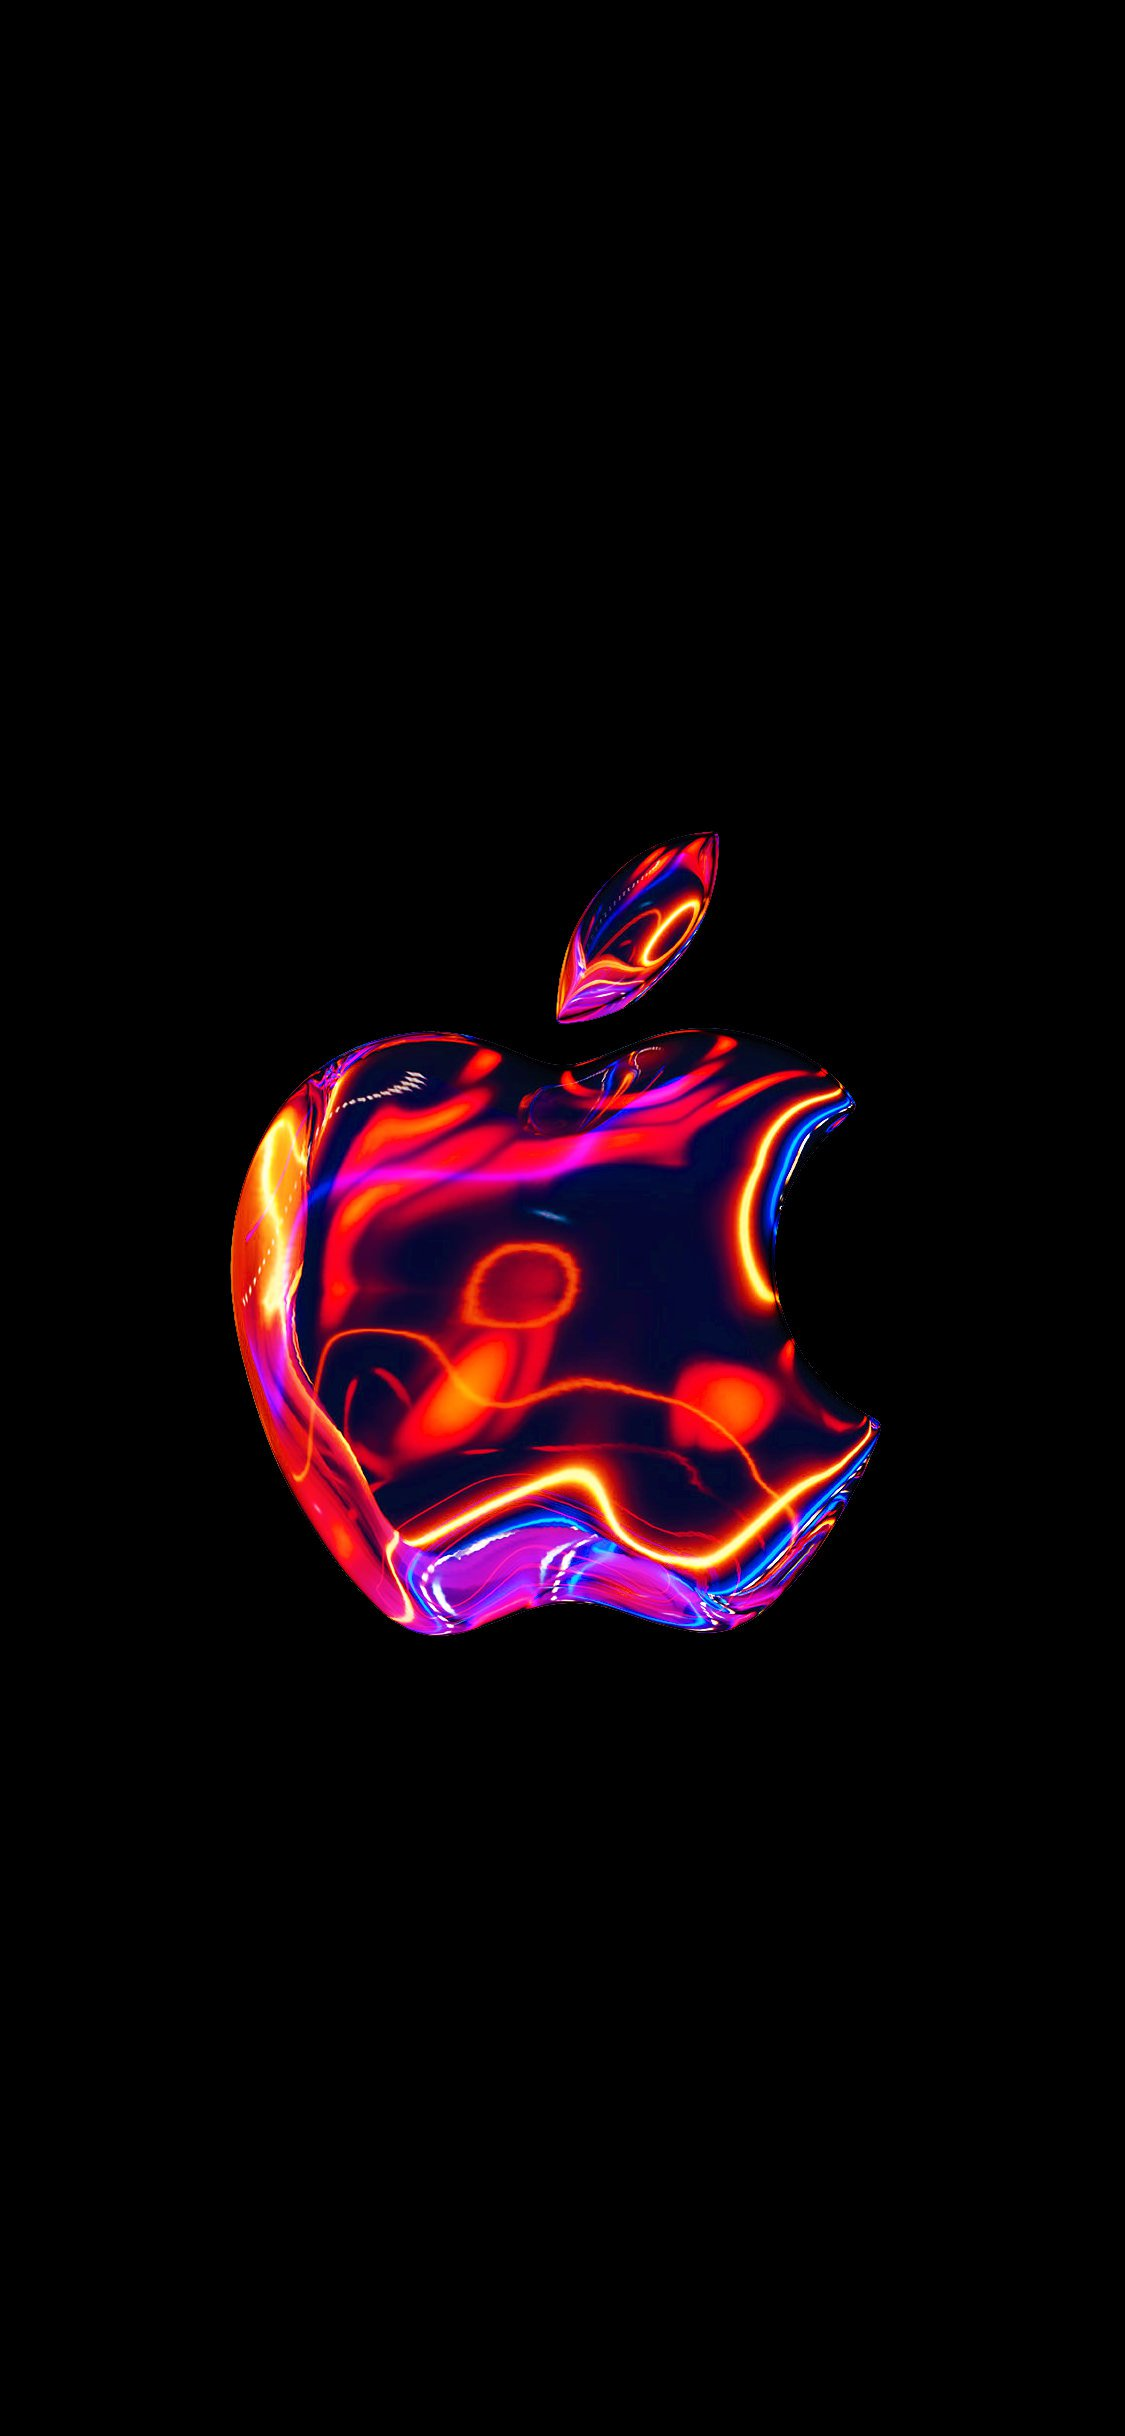 Metallic Apple logo background 88.3% [1125x2436.